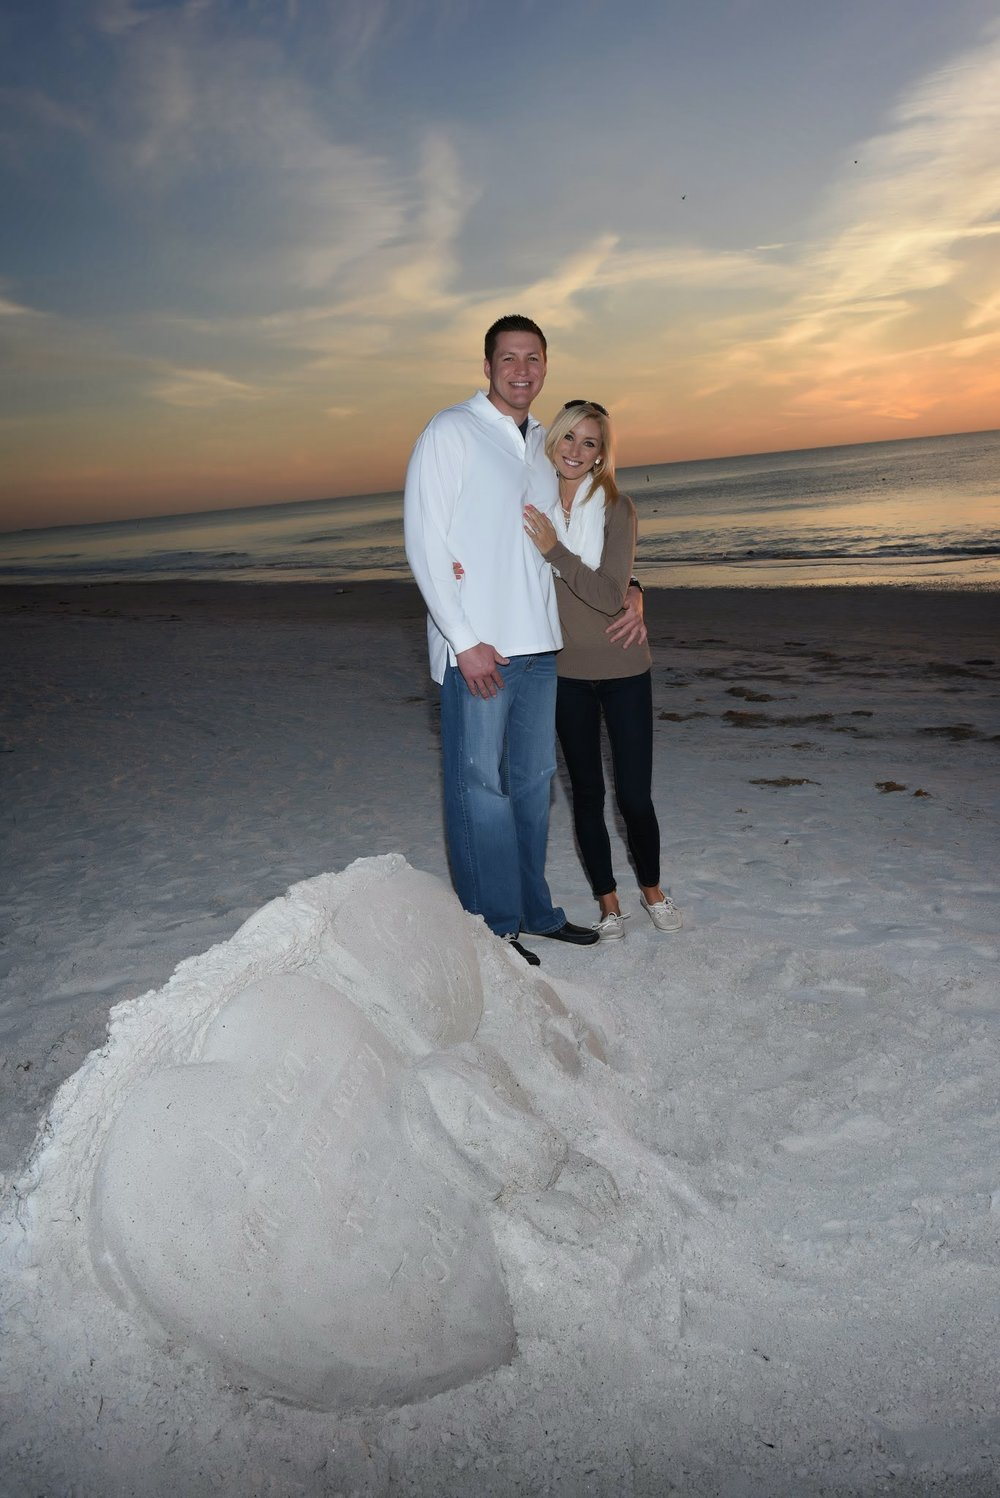 The Pink Palace Proposal | House Full of Summer - A romantic beach proposal at the Don CeSar on St. Pete Beach, Florida,  sand sculpture proposal, beach engagement, sunset proposal on the beach, secret photographerhow he asked, best wedding proposal, creative proposal , must love dogs, dog wedding proposal how he asked, best wedding proposal, creative proposal , must love dogs, dog wedding proposal